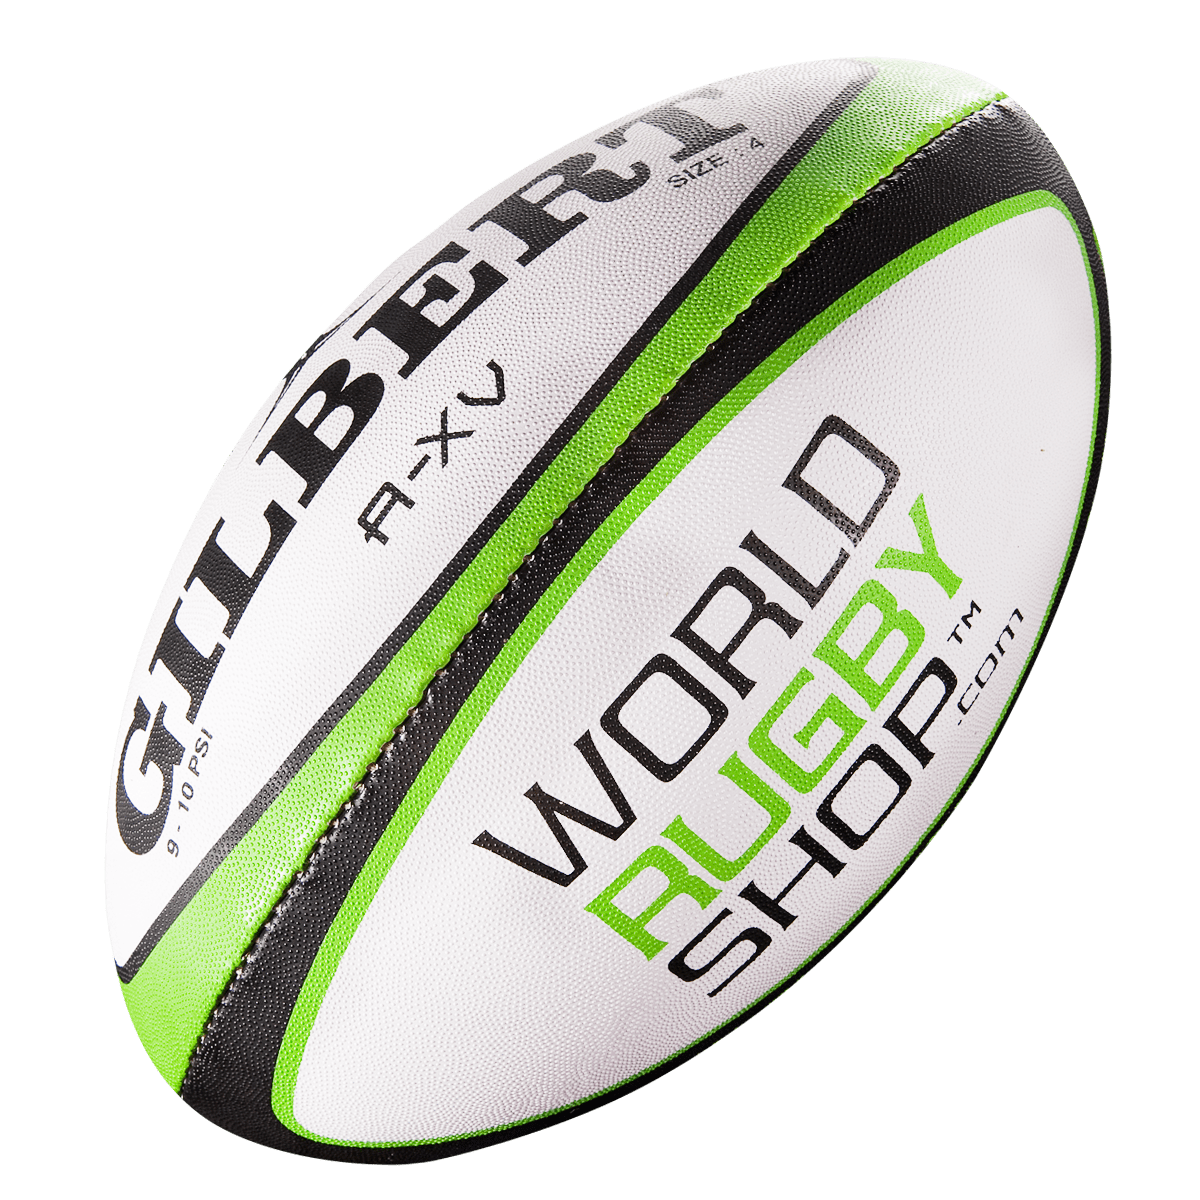 Evolution of the Gilbert Rugby Ball